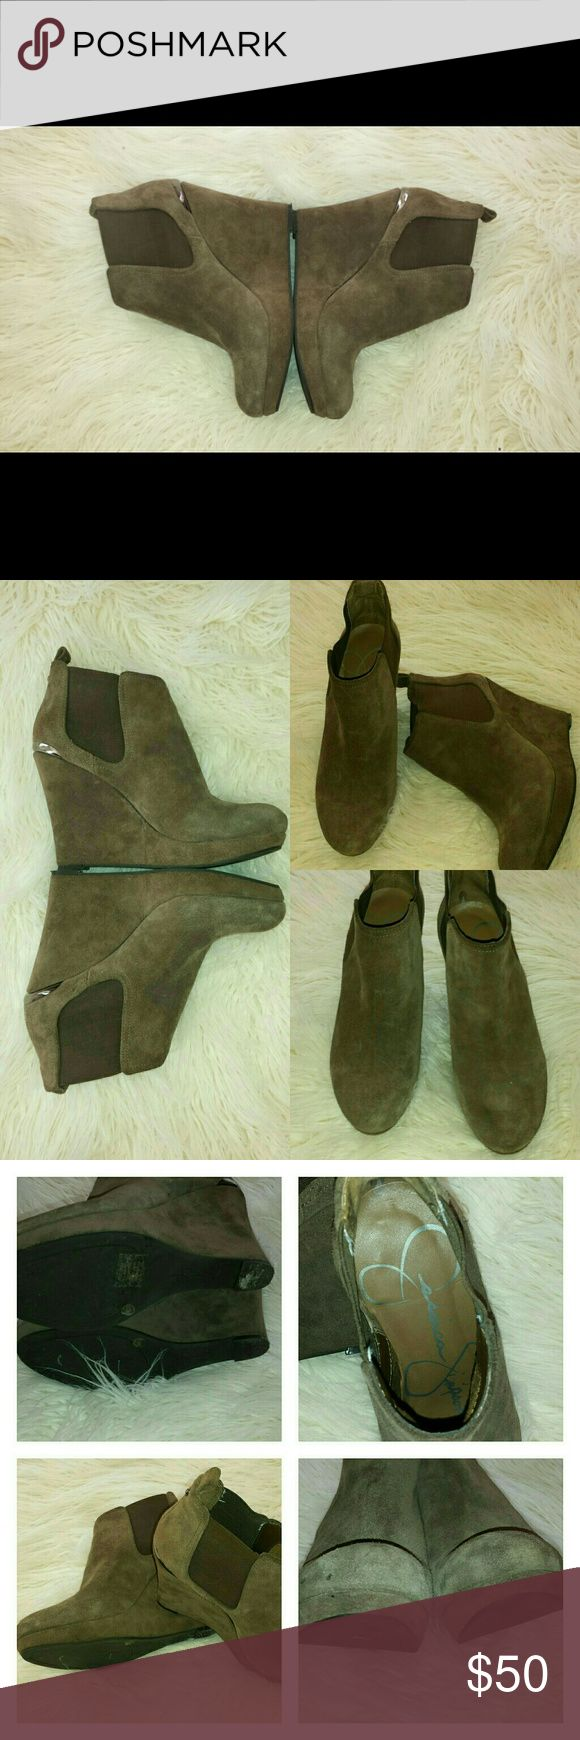 Jessica Simpson's booties Jessica Simpson's booties in suede. In good condition .   4 inch heel. Jessica Simpson Shoes Ankle Boots & Booties